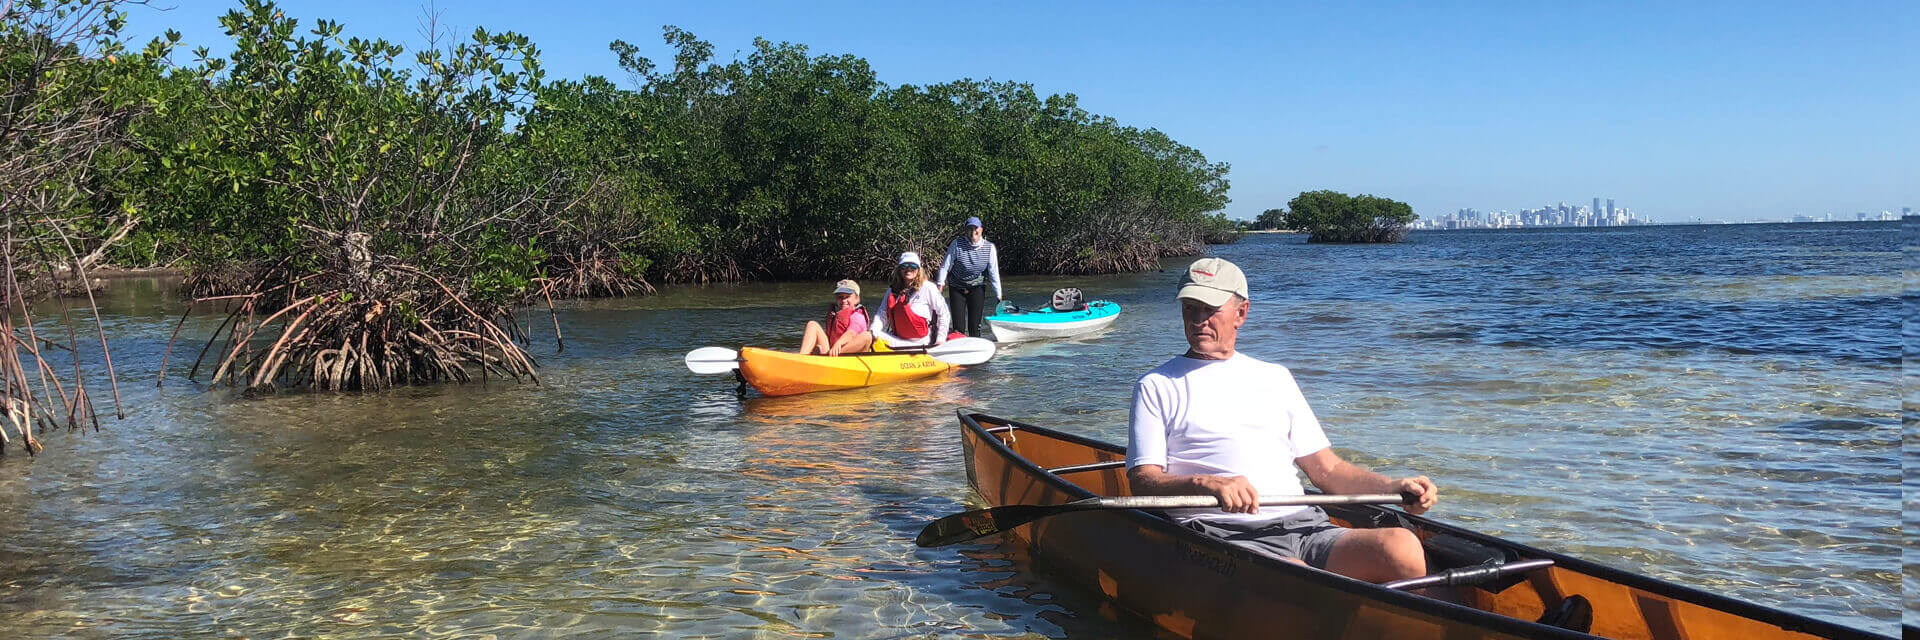 Chapmanfield Park Kayak Rental Miami